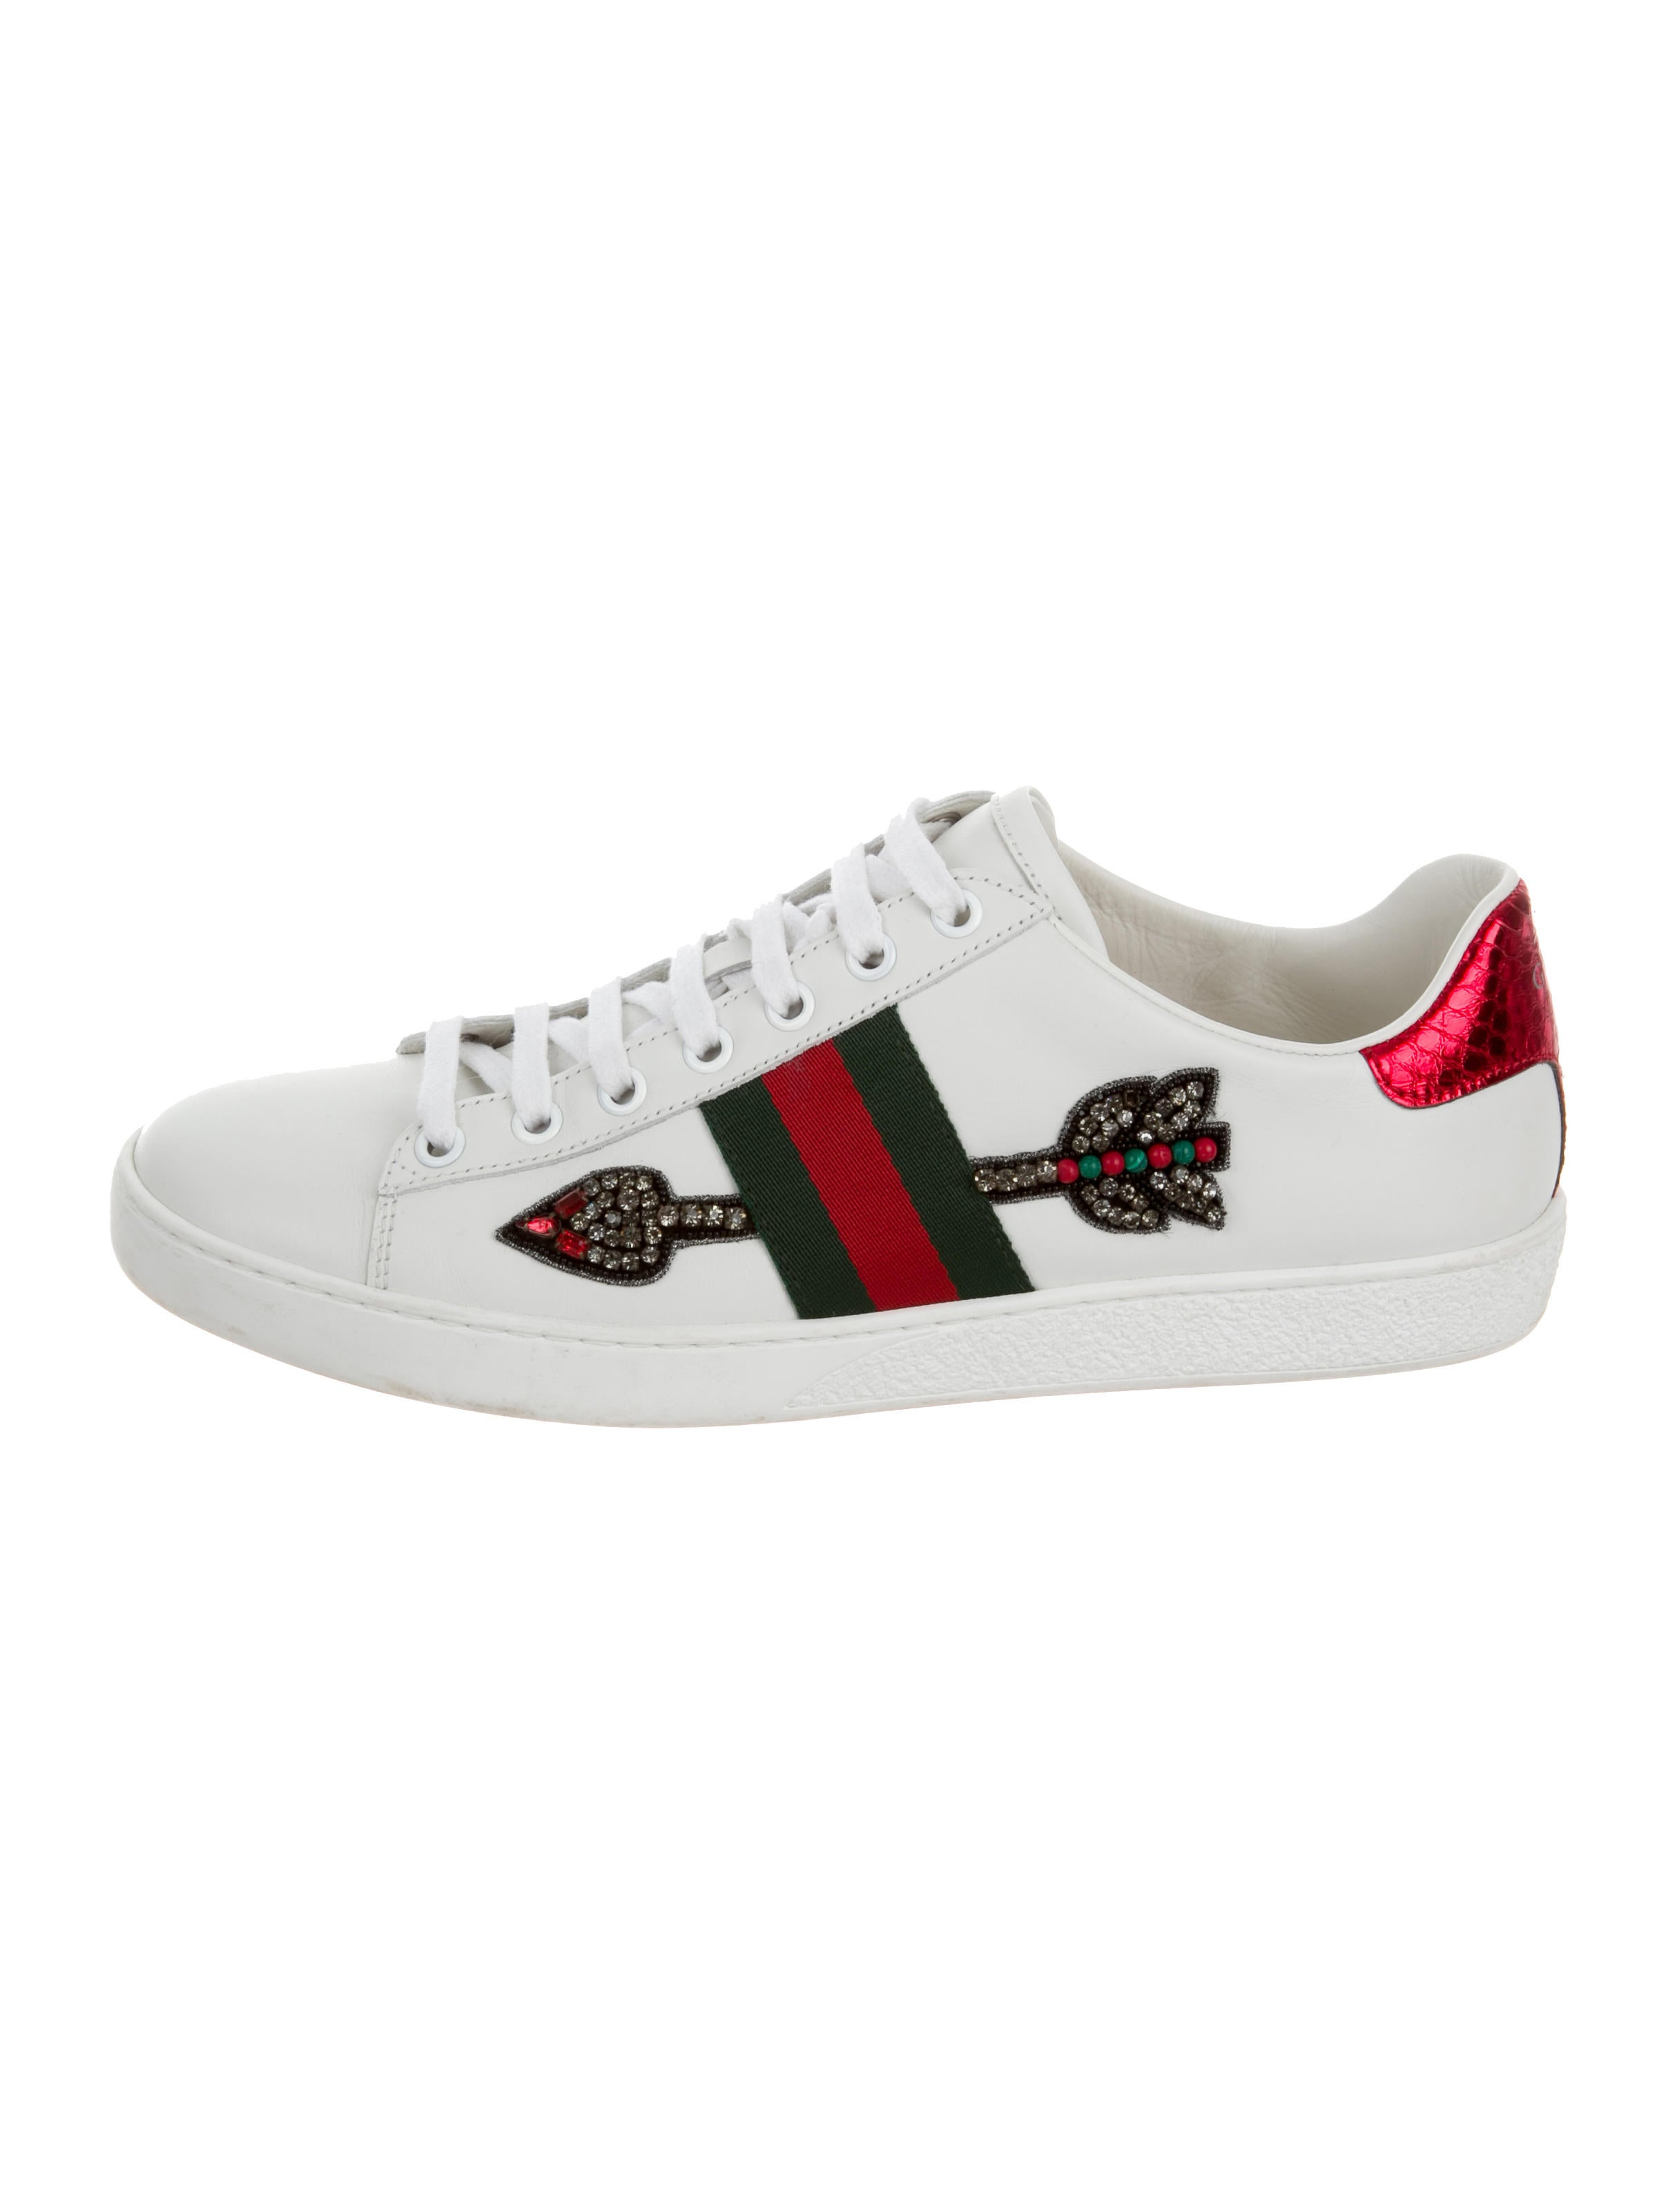 Gucci 2017 Ace Arrow Sneakers - Shoes